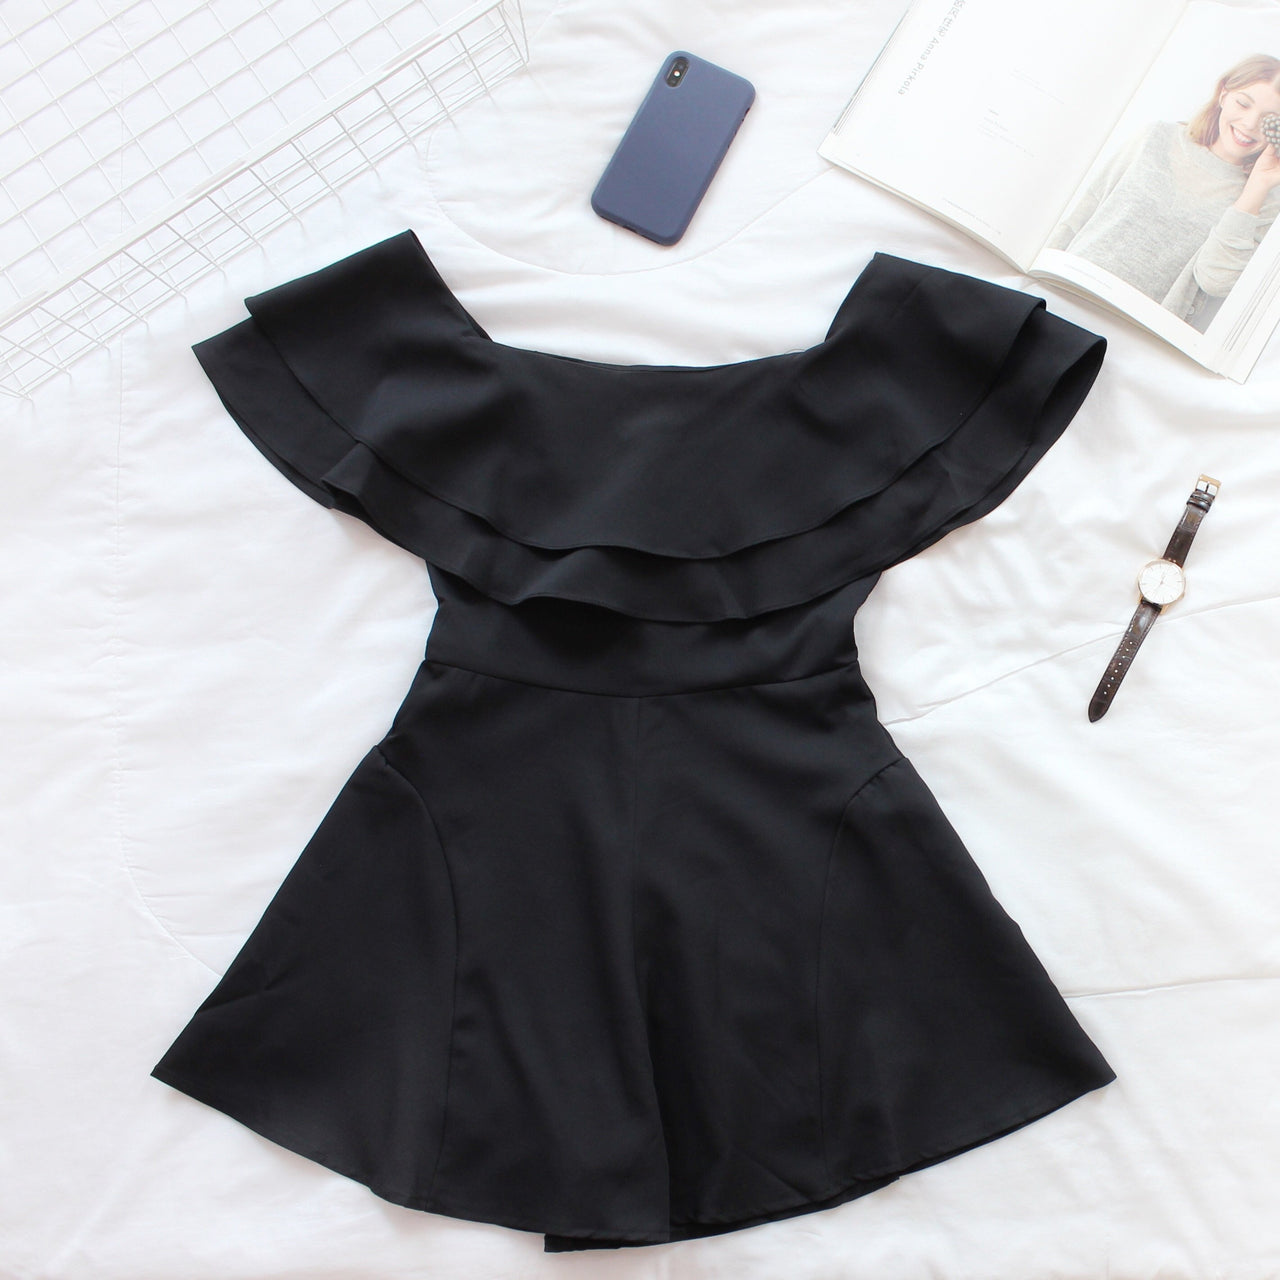 Hermione Flare Romper - LovelyMadness Clothing Online Fashion Malaysia